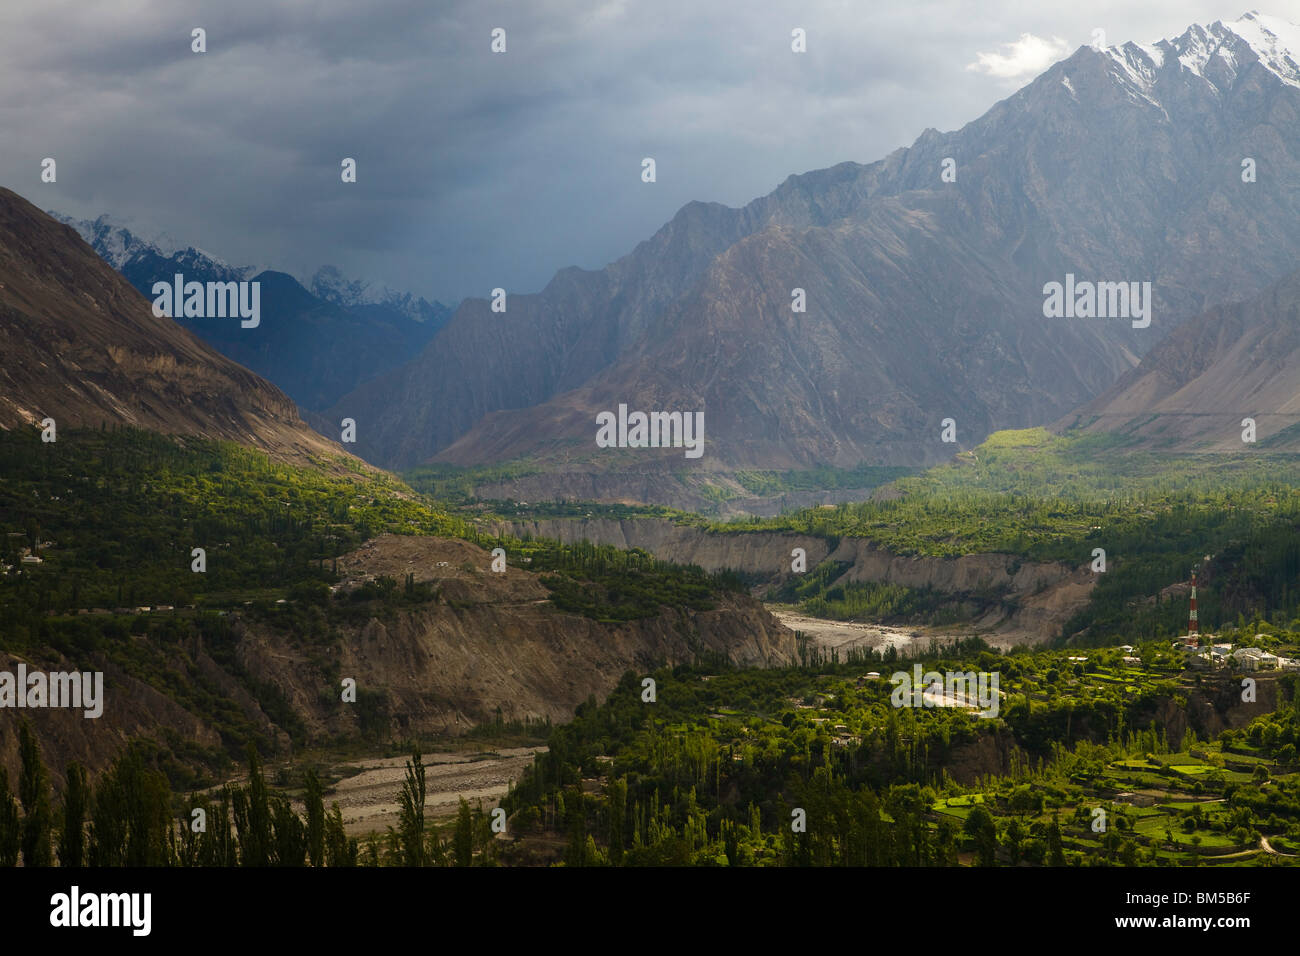 Hunza Valley at Karimabad, Pakistan - Stock Image